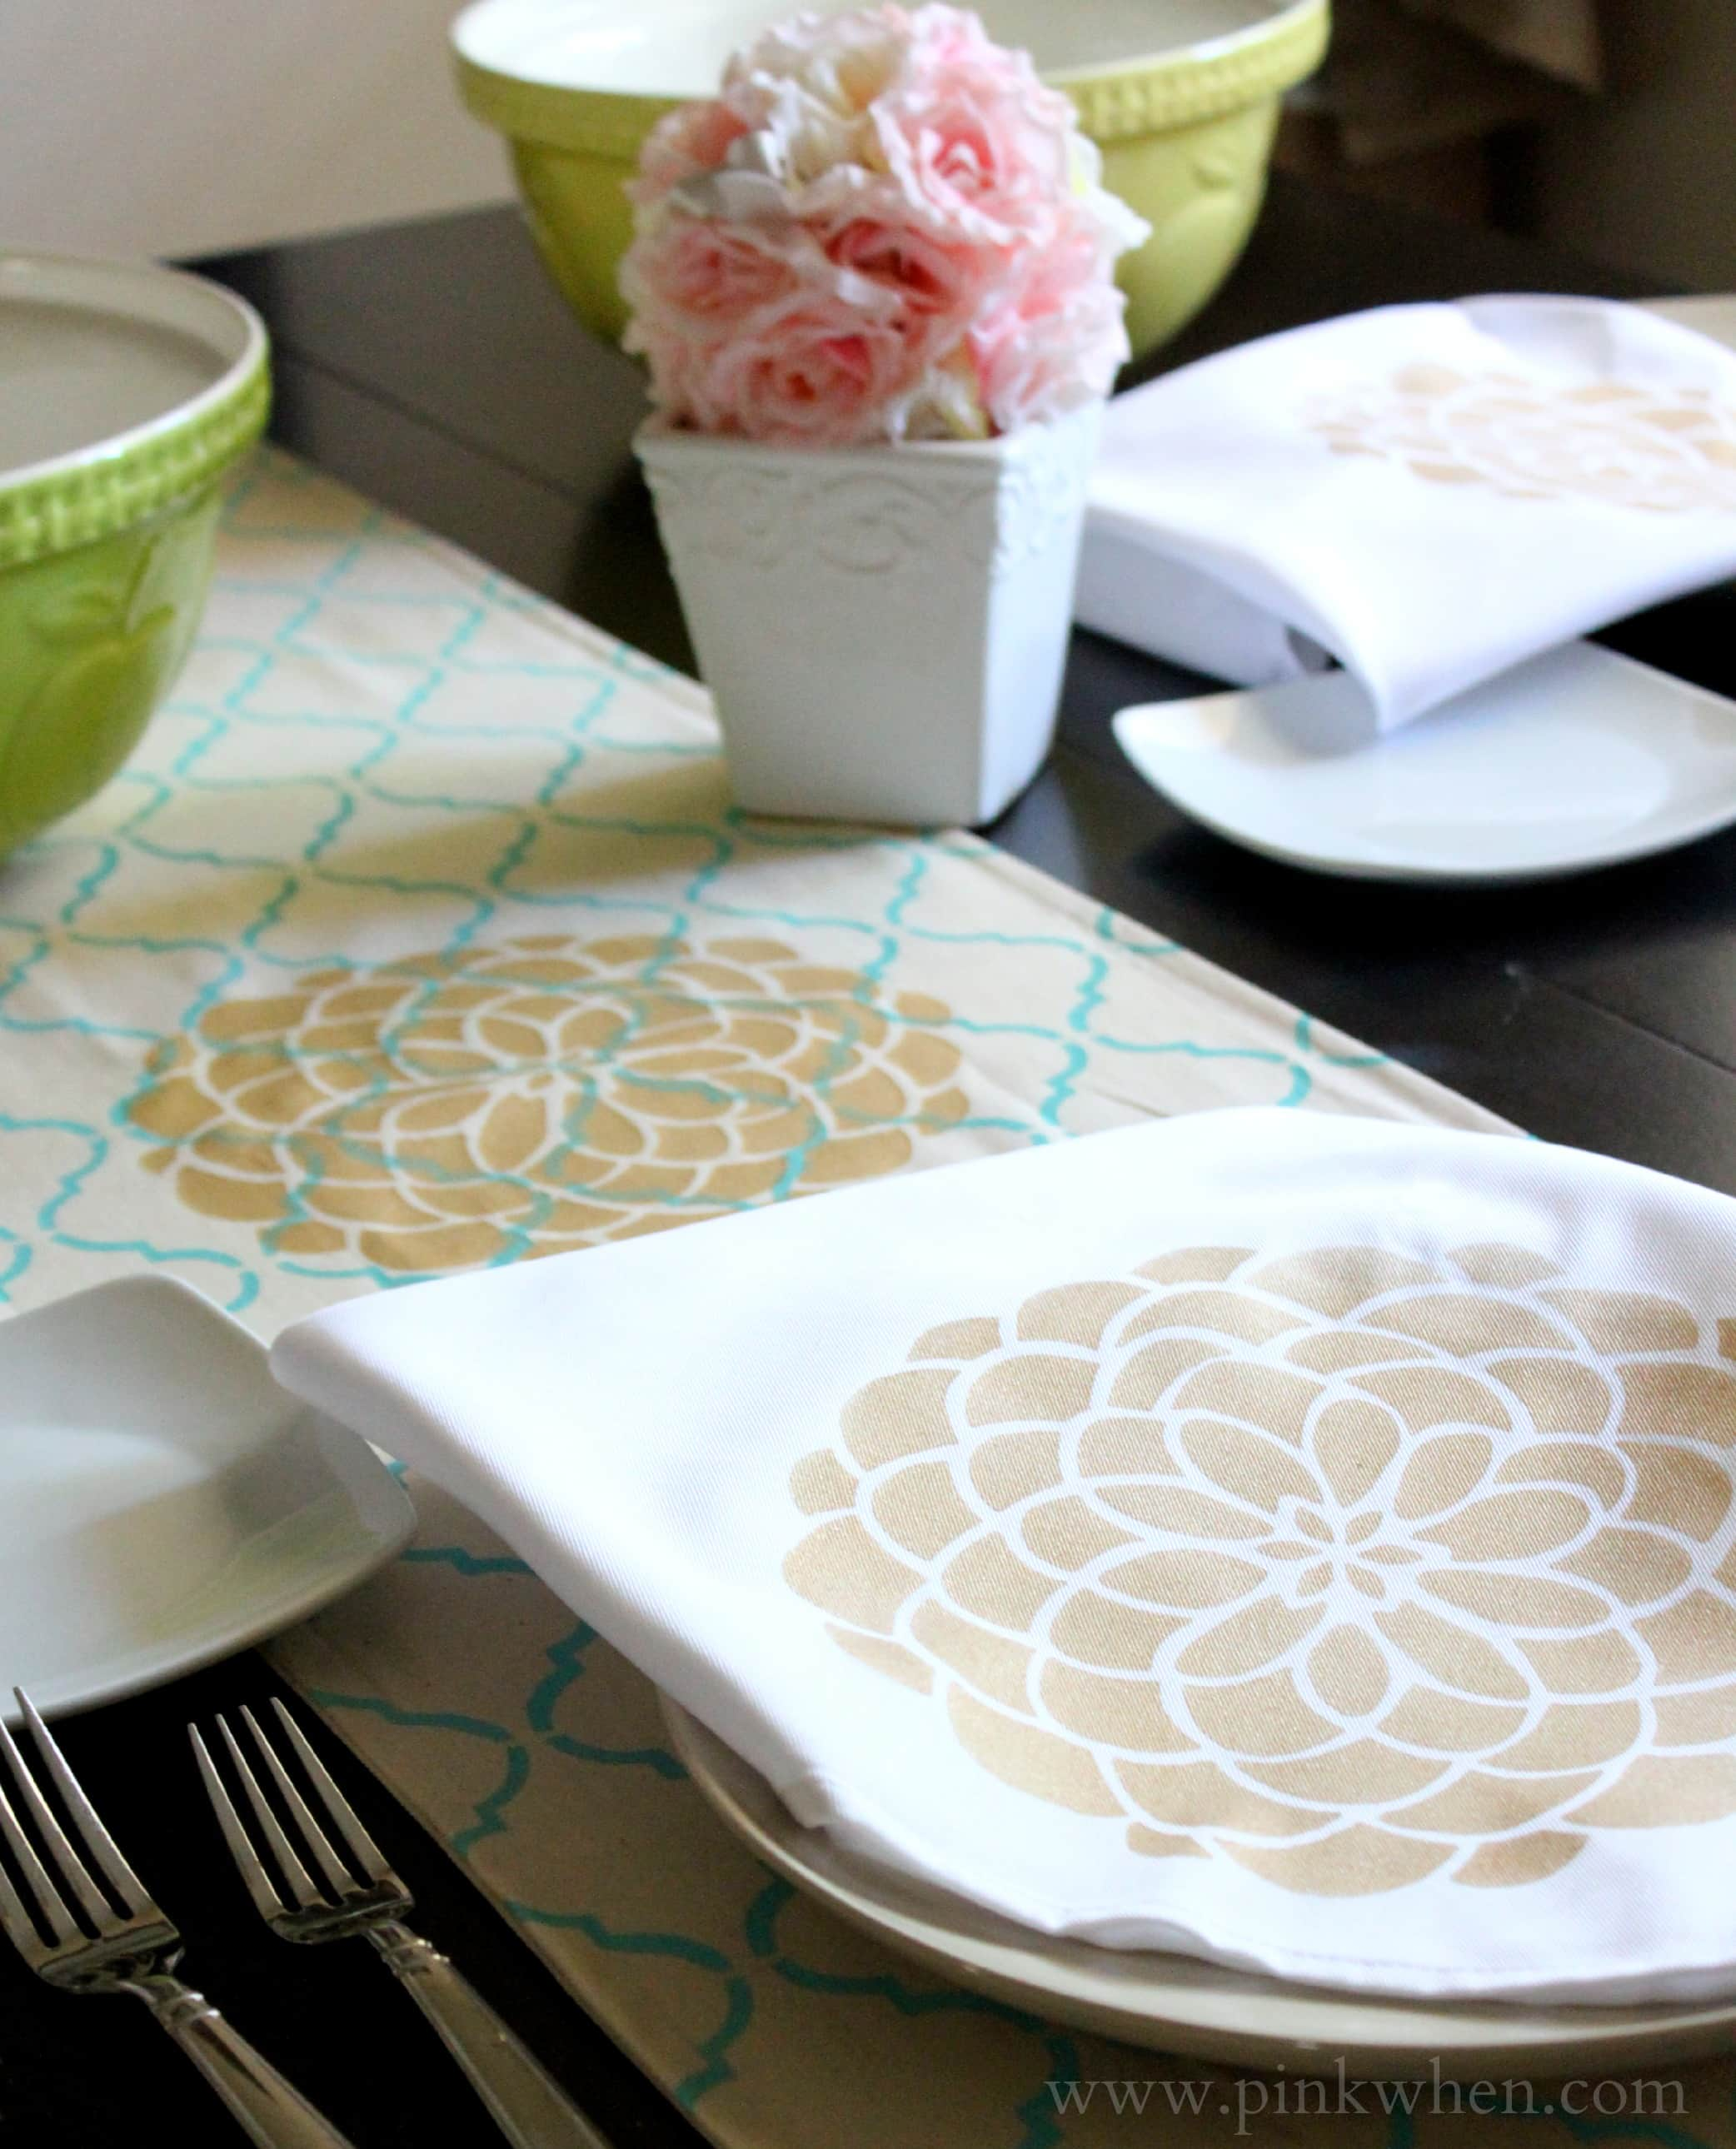 DIY Table & Kitchen Decor with Tulip For Your Home via PinkWhen.com